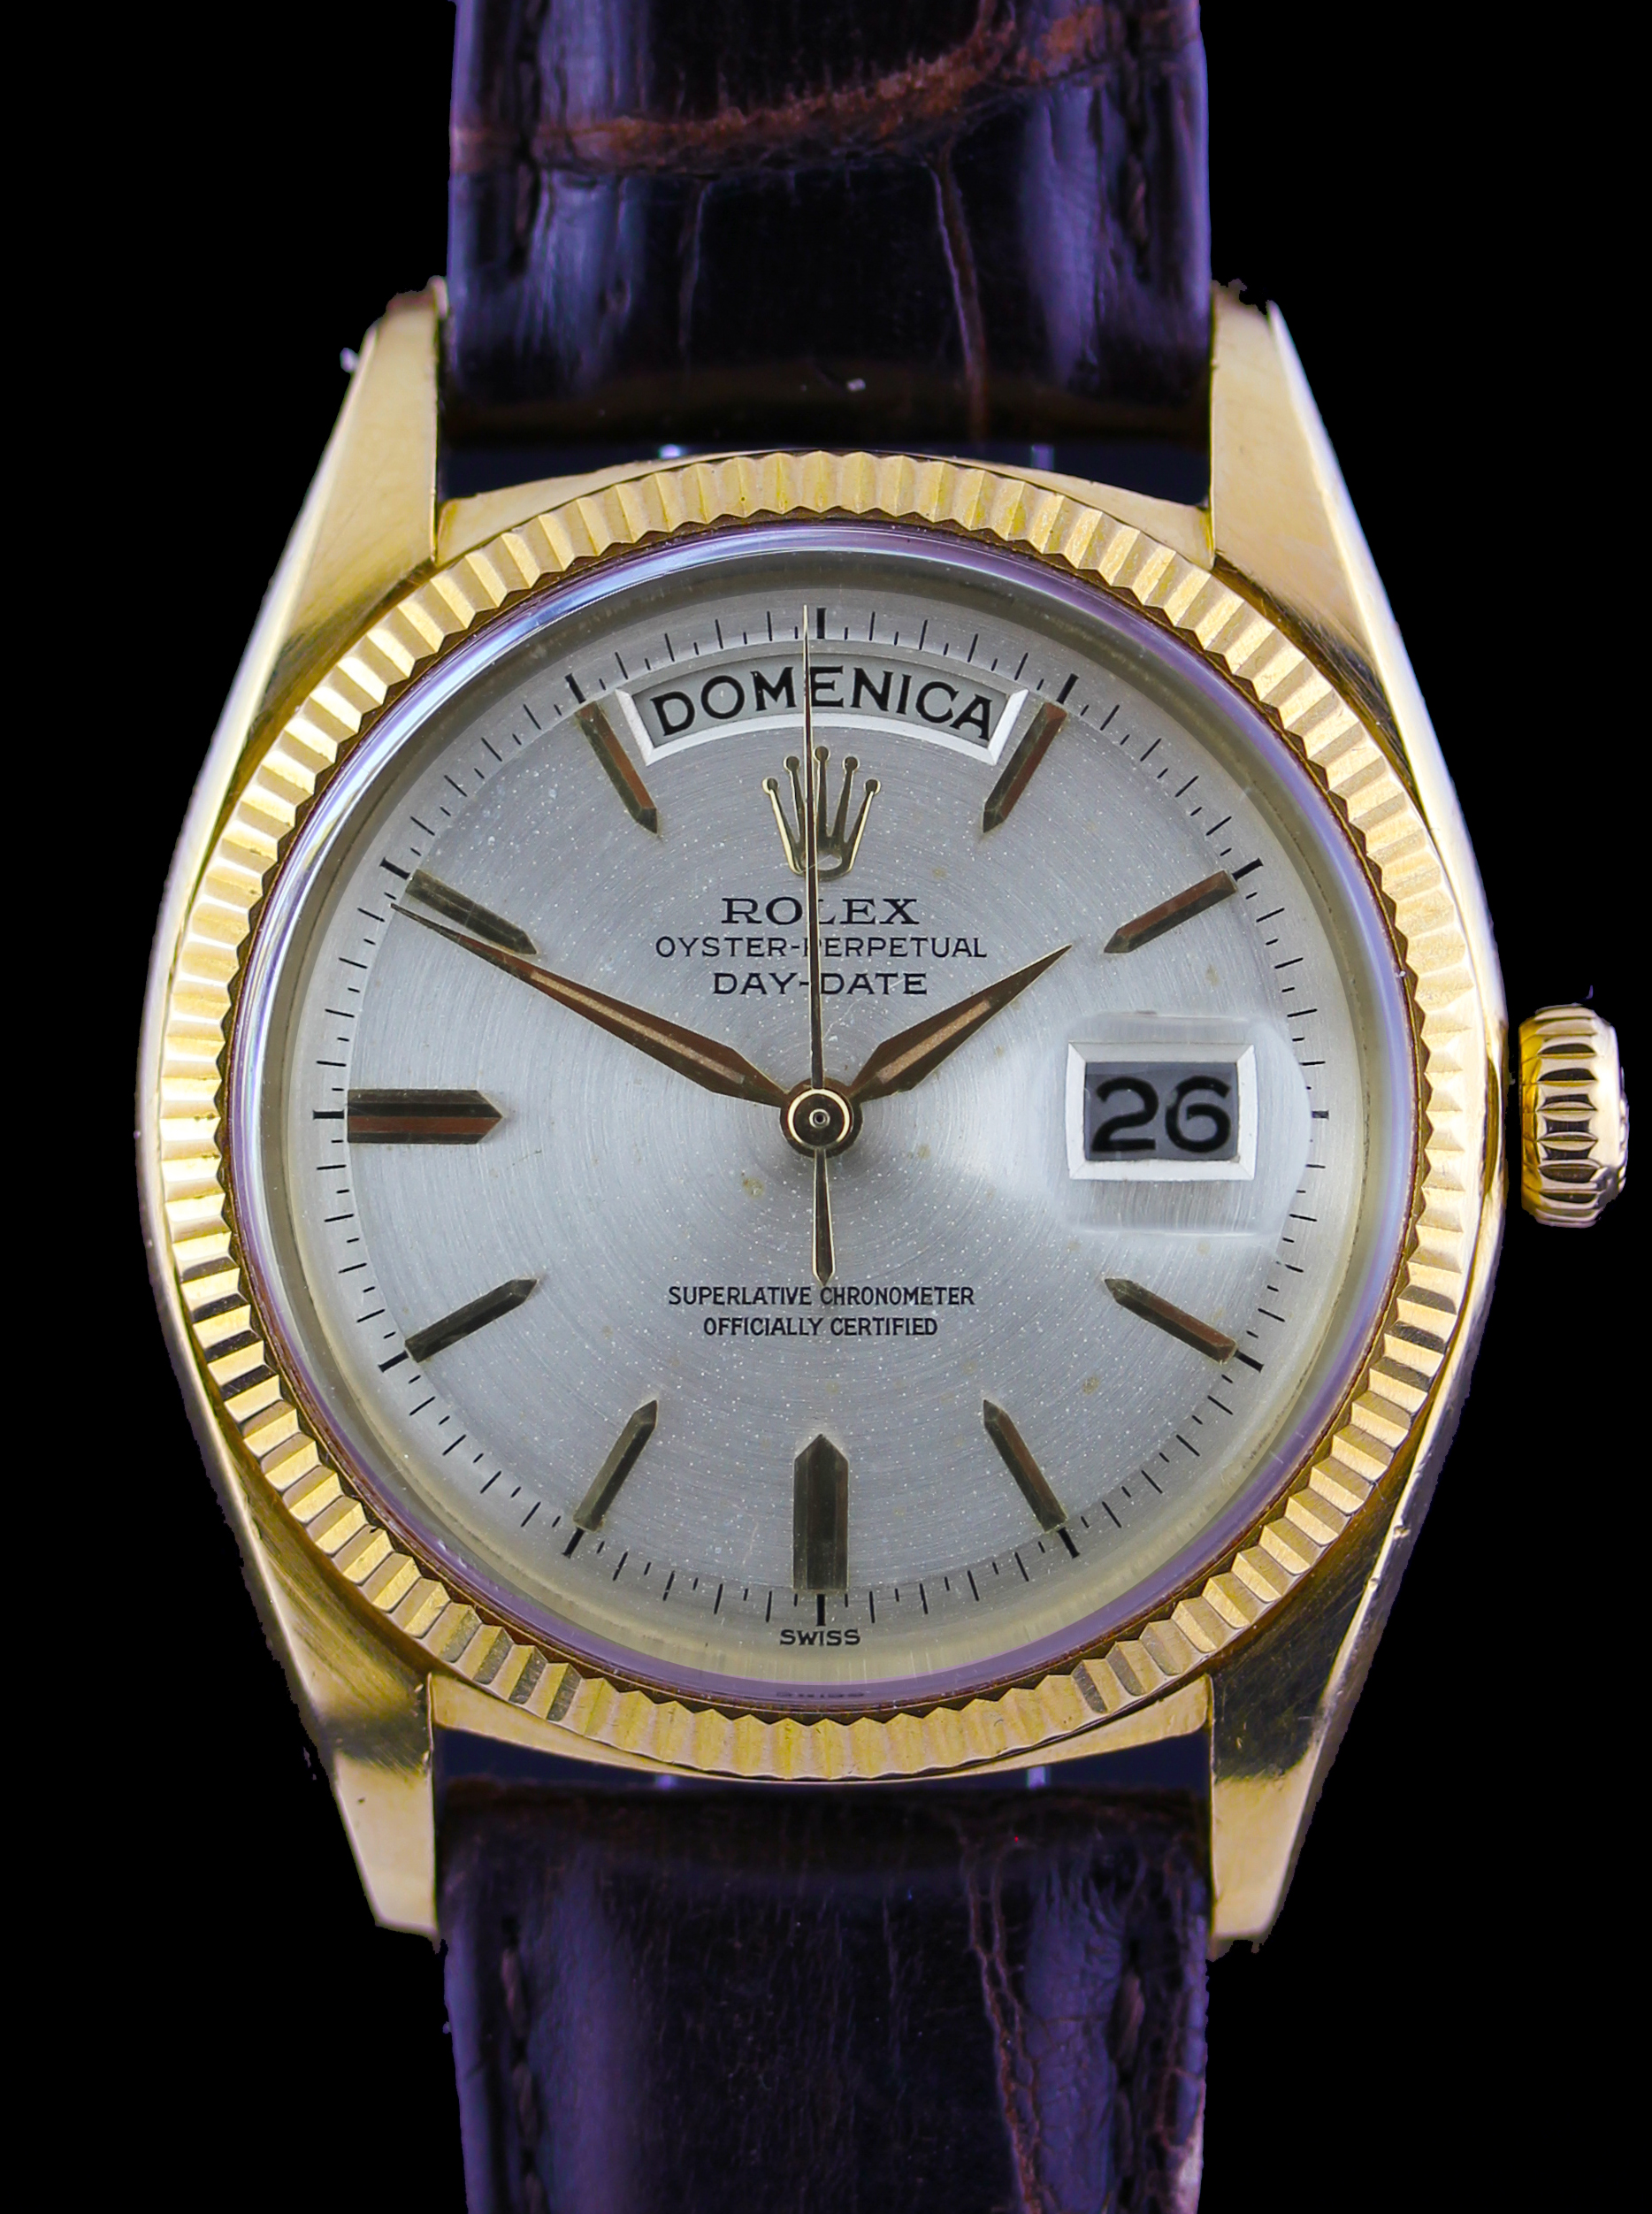 """Early Rolex Day-Date from 1961, so called """"Marilyn Monroe - John F. Kennedy Day-Date"""""""